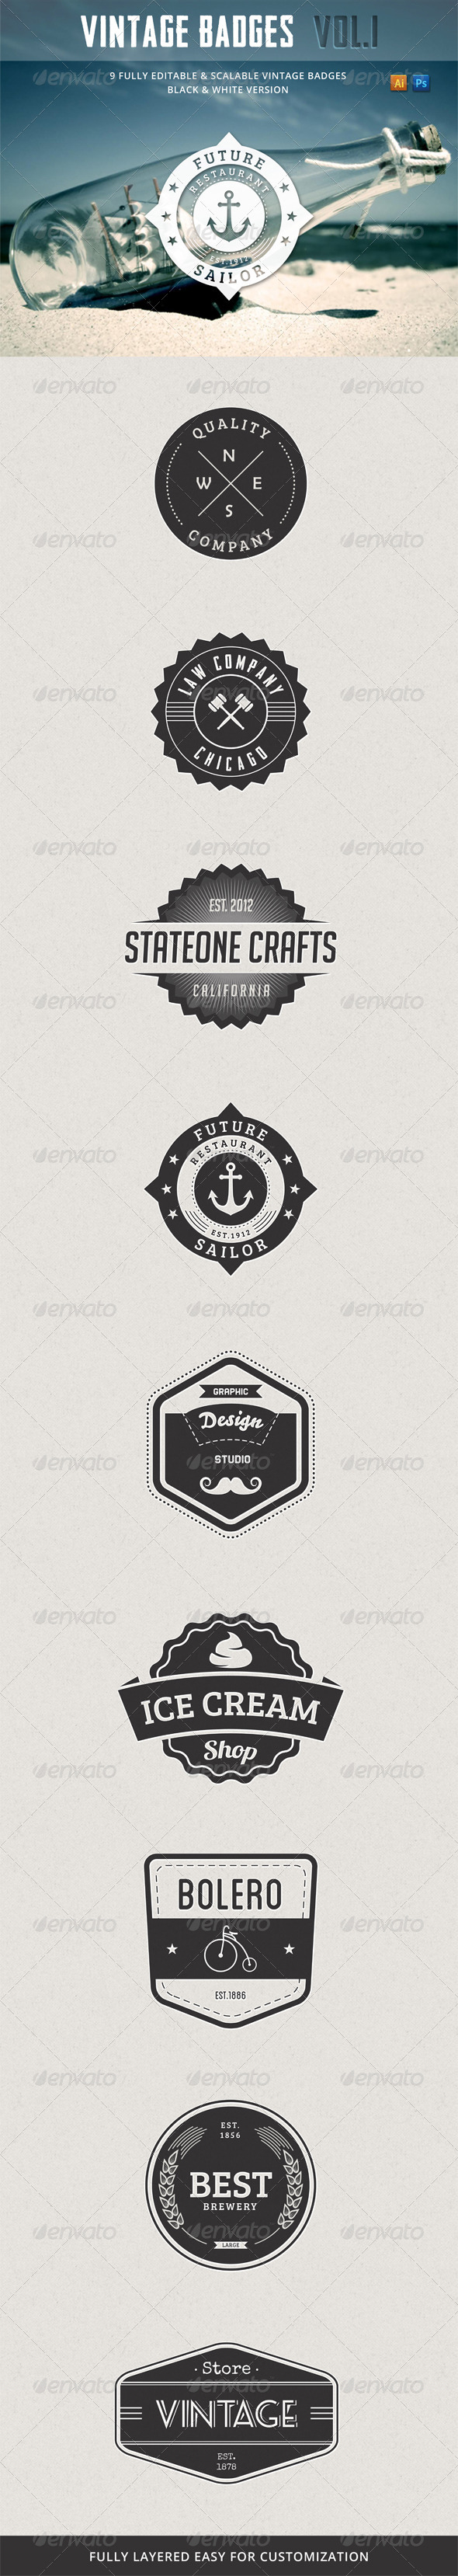 GraphicRiver Retro Vintage Badges Vol.1 4242149